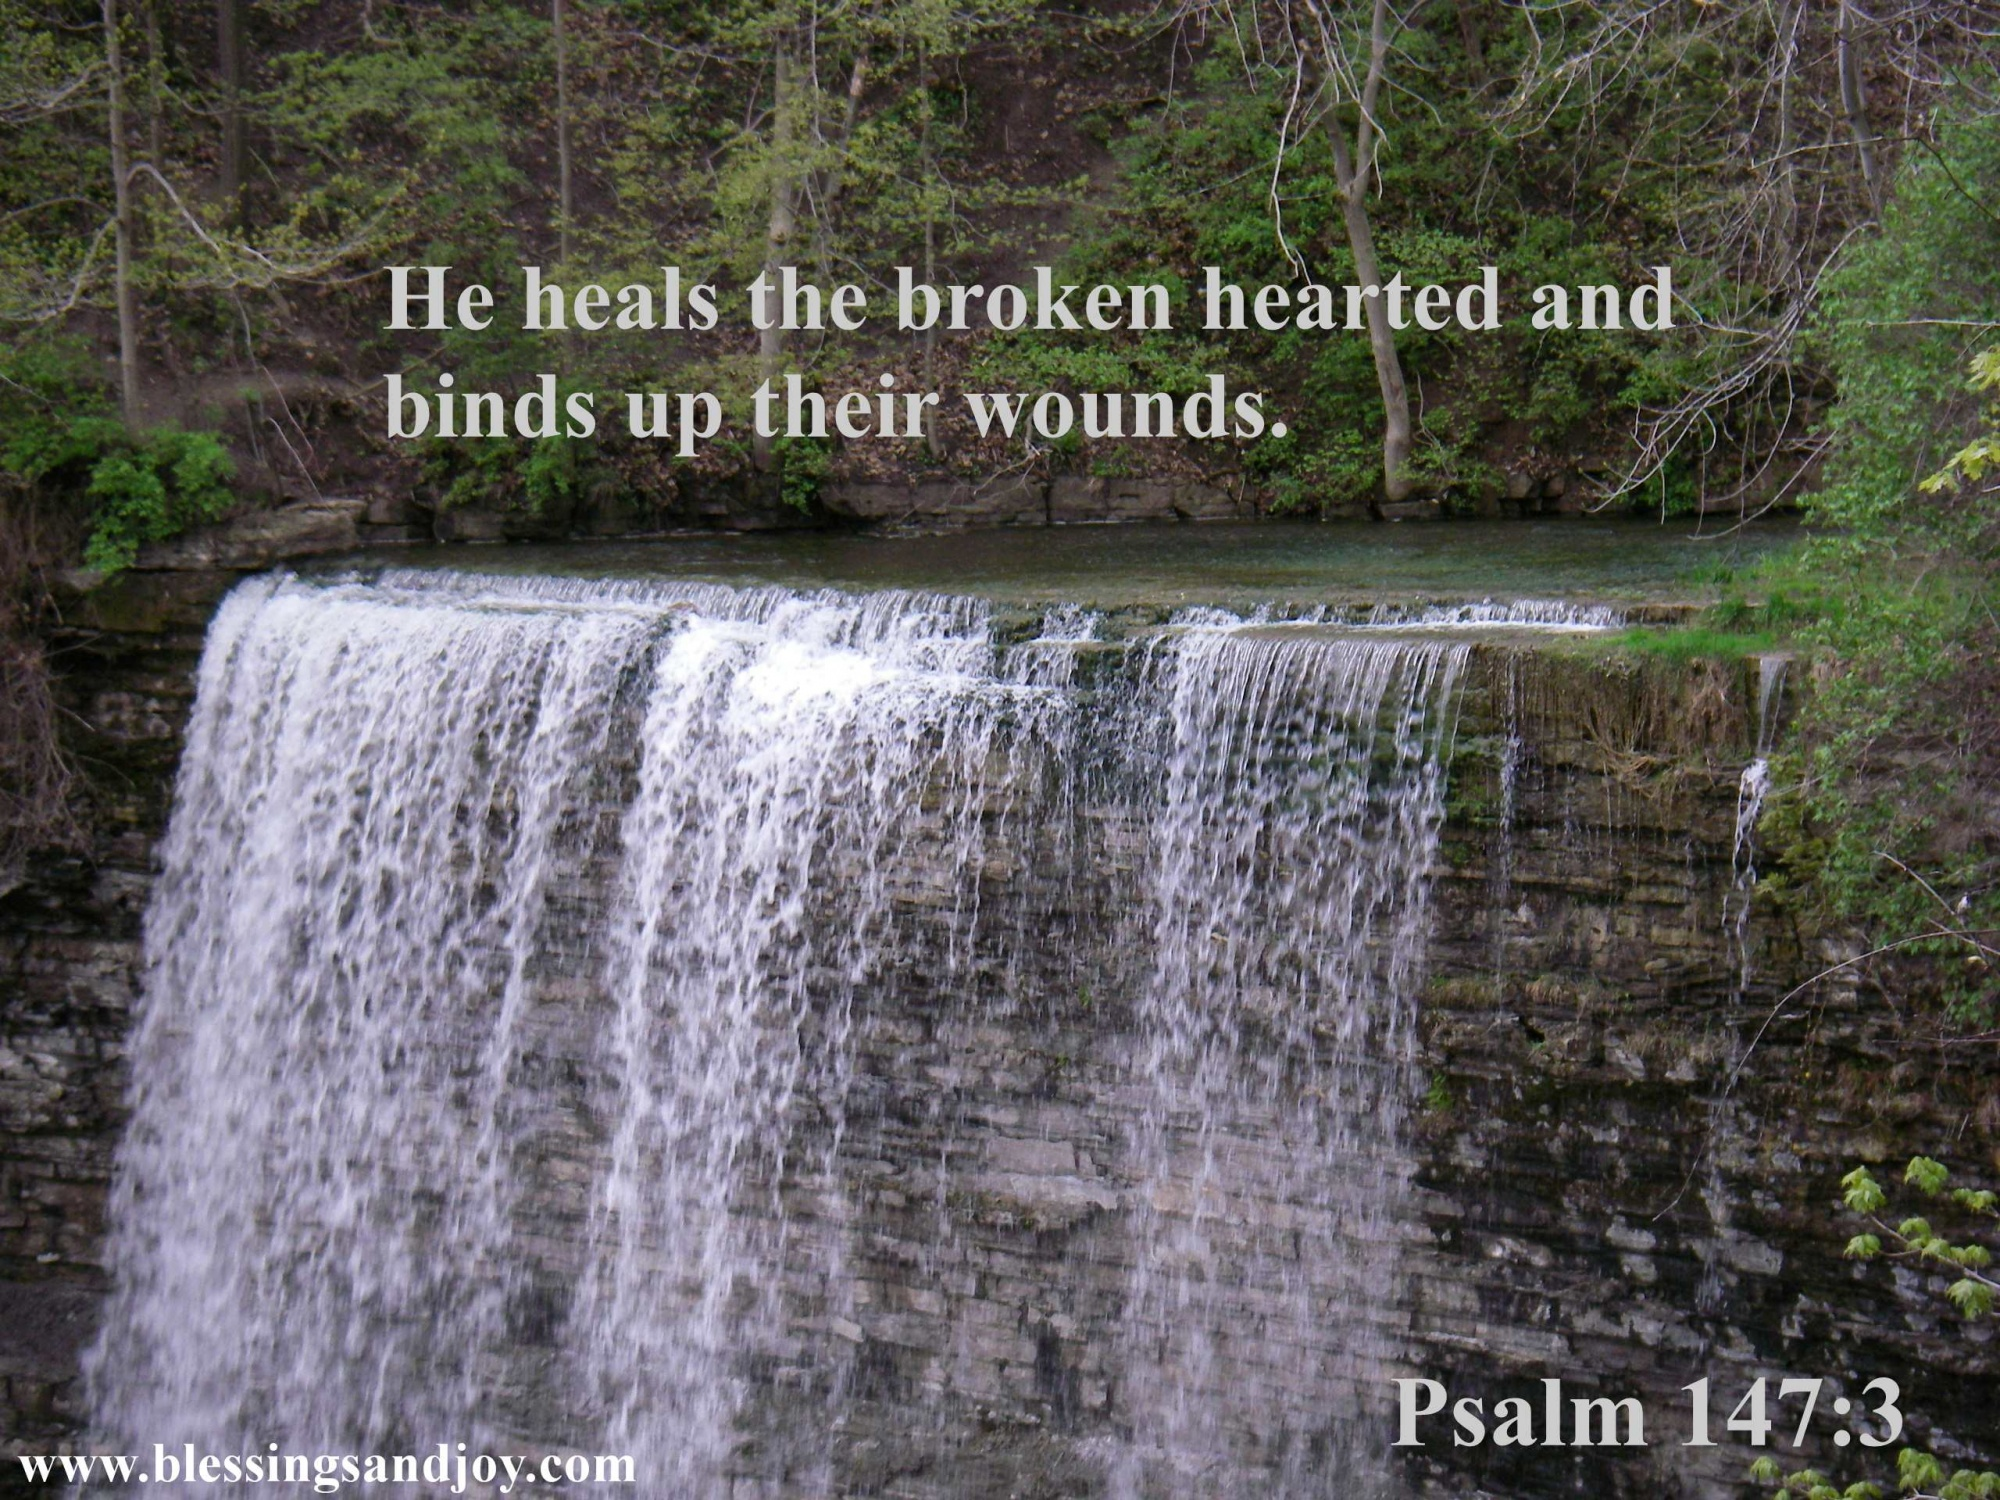 He_heals_the_broken_hearted_and_binds_up_their_wounds_Psalm_147_3-14